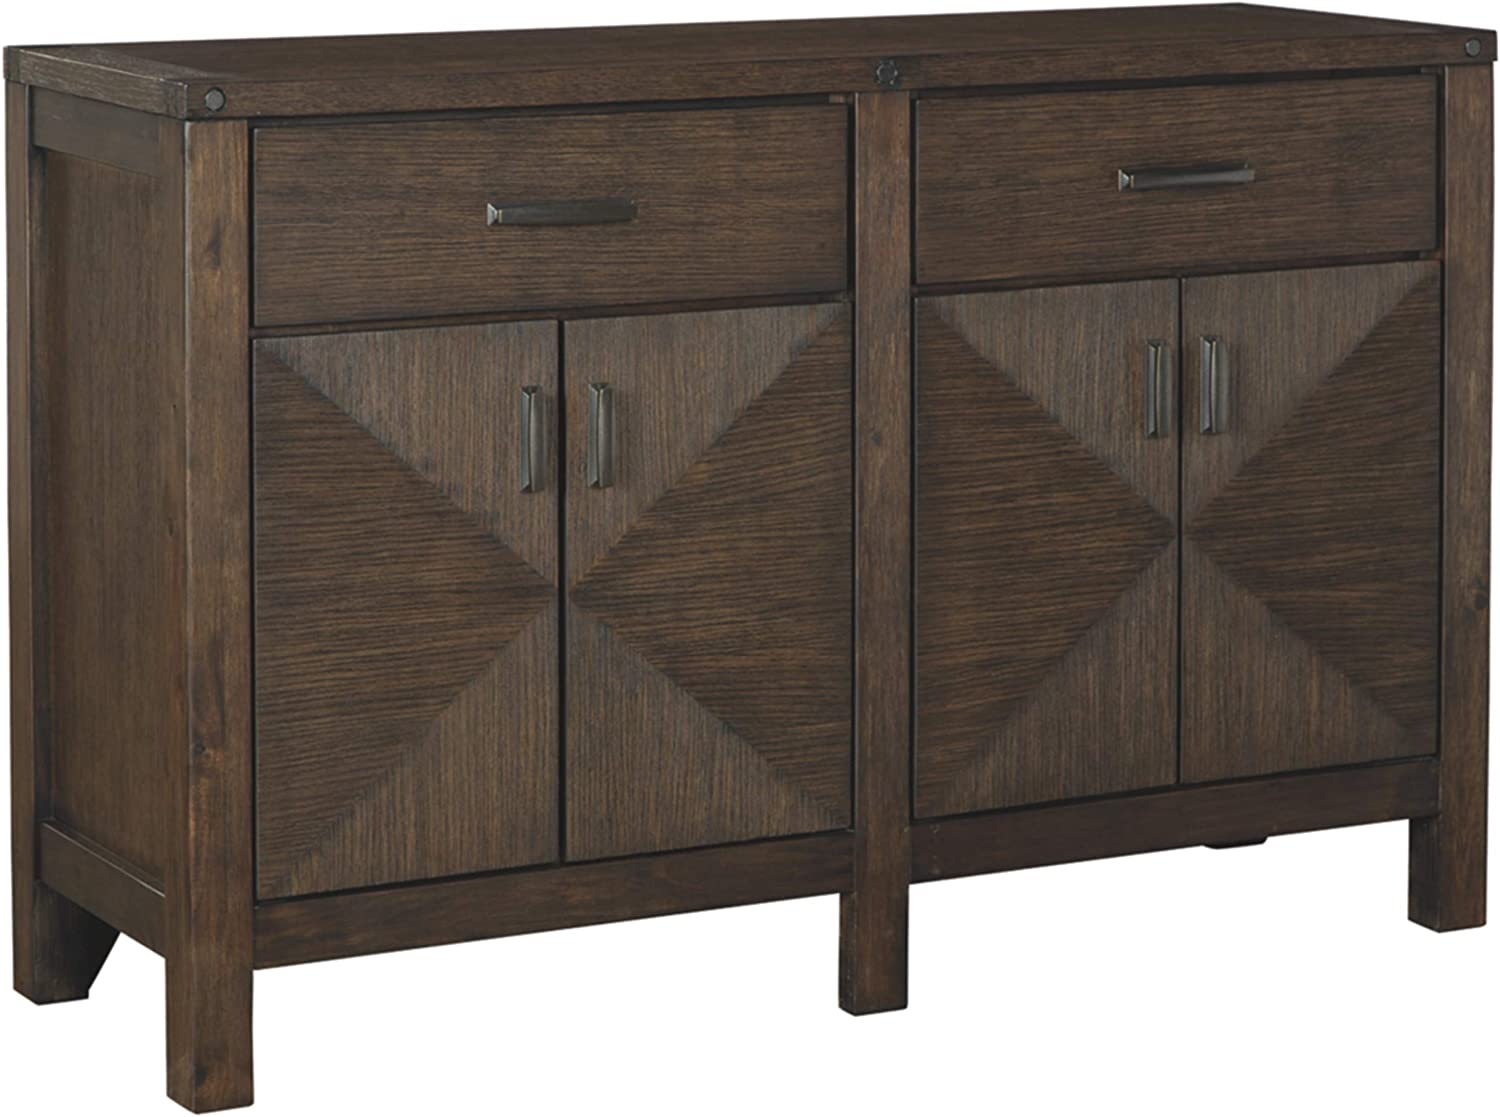 Signature Design by Ashley Dellbeck Server New item Brown Dining depot Room